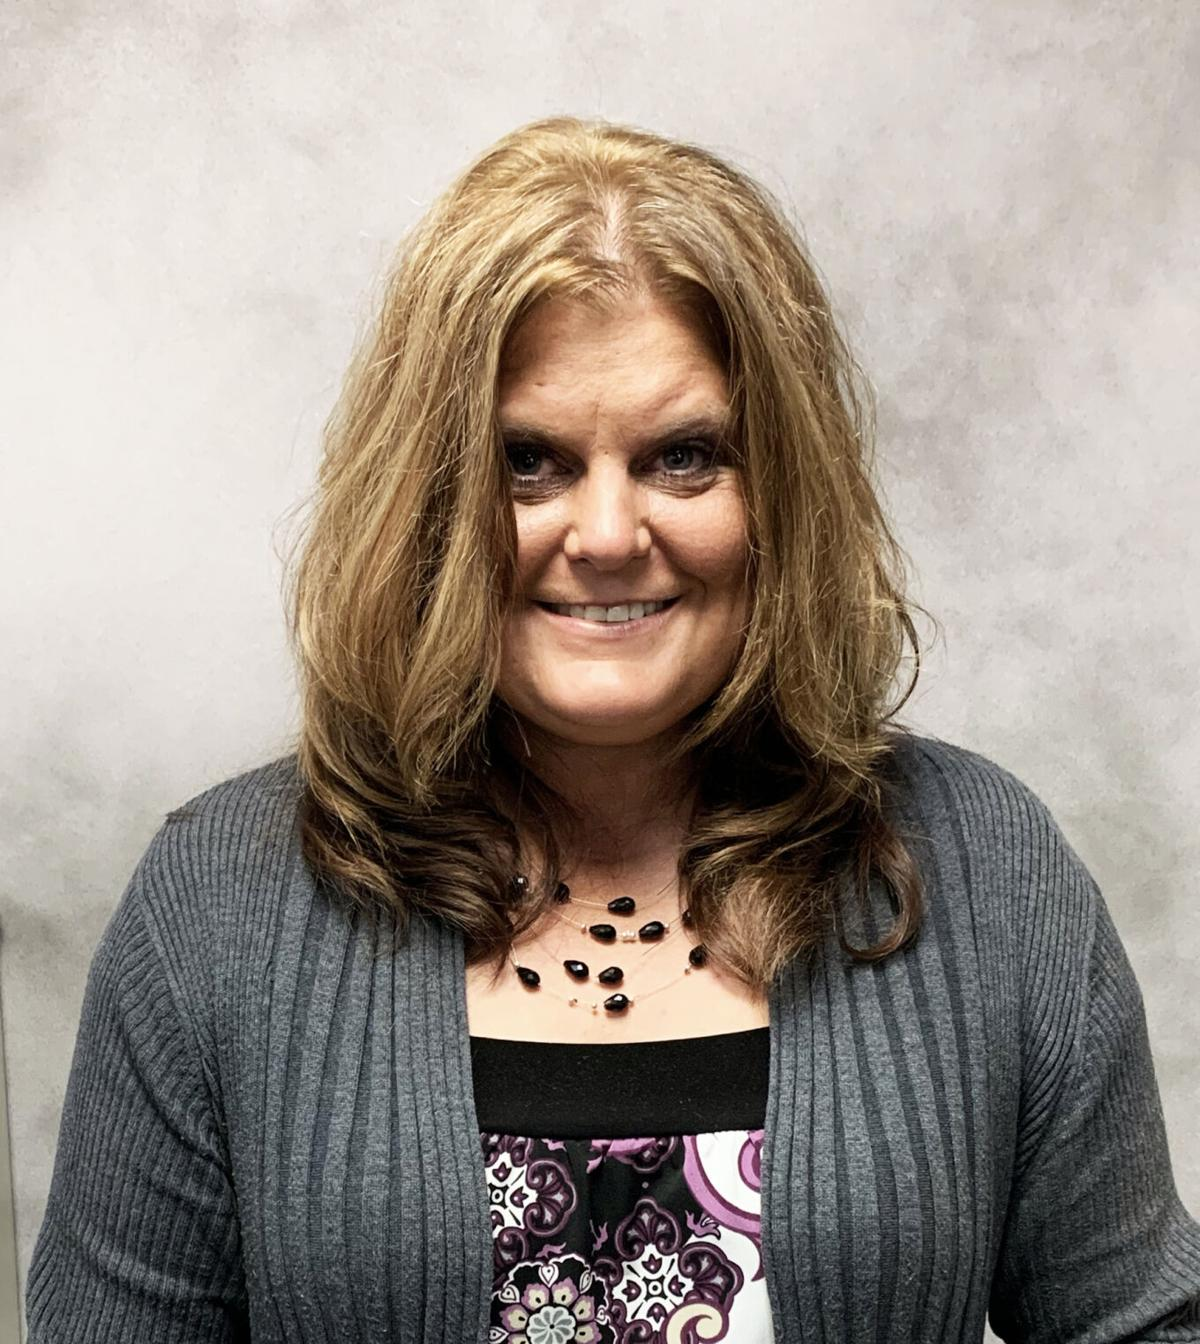 Trinidad State College's Director of Technology Programs and Instruction